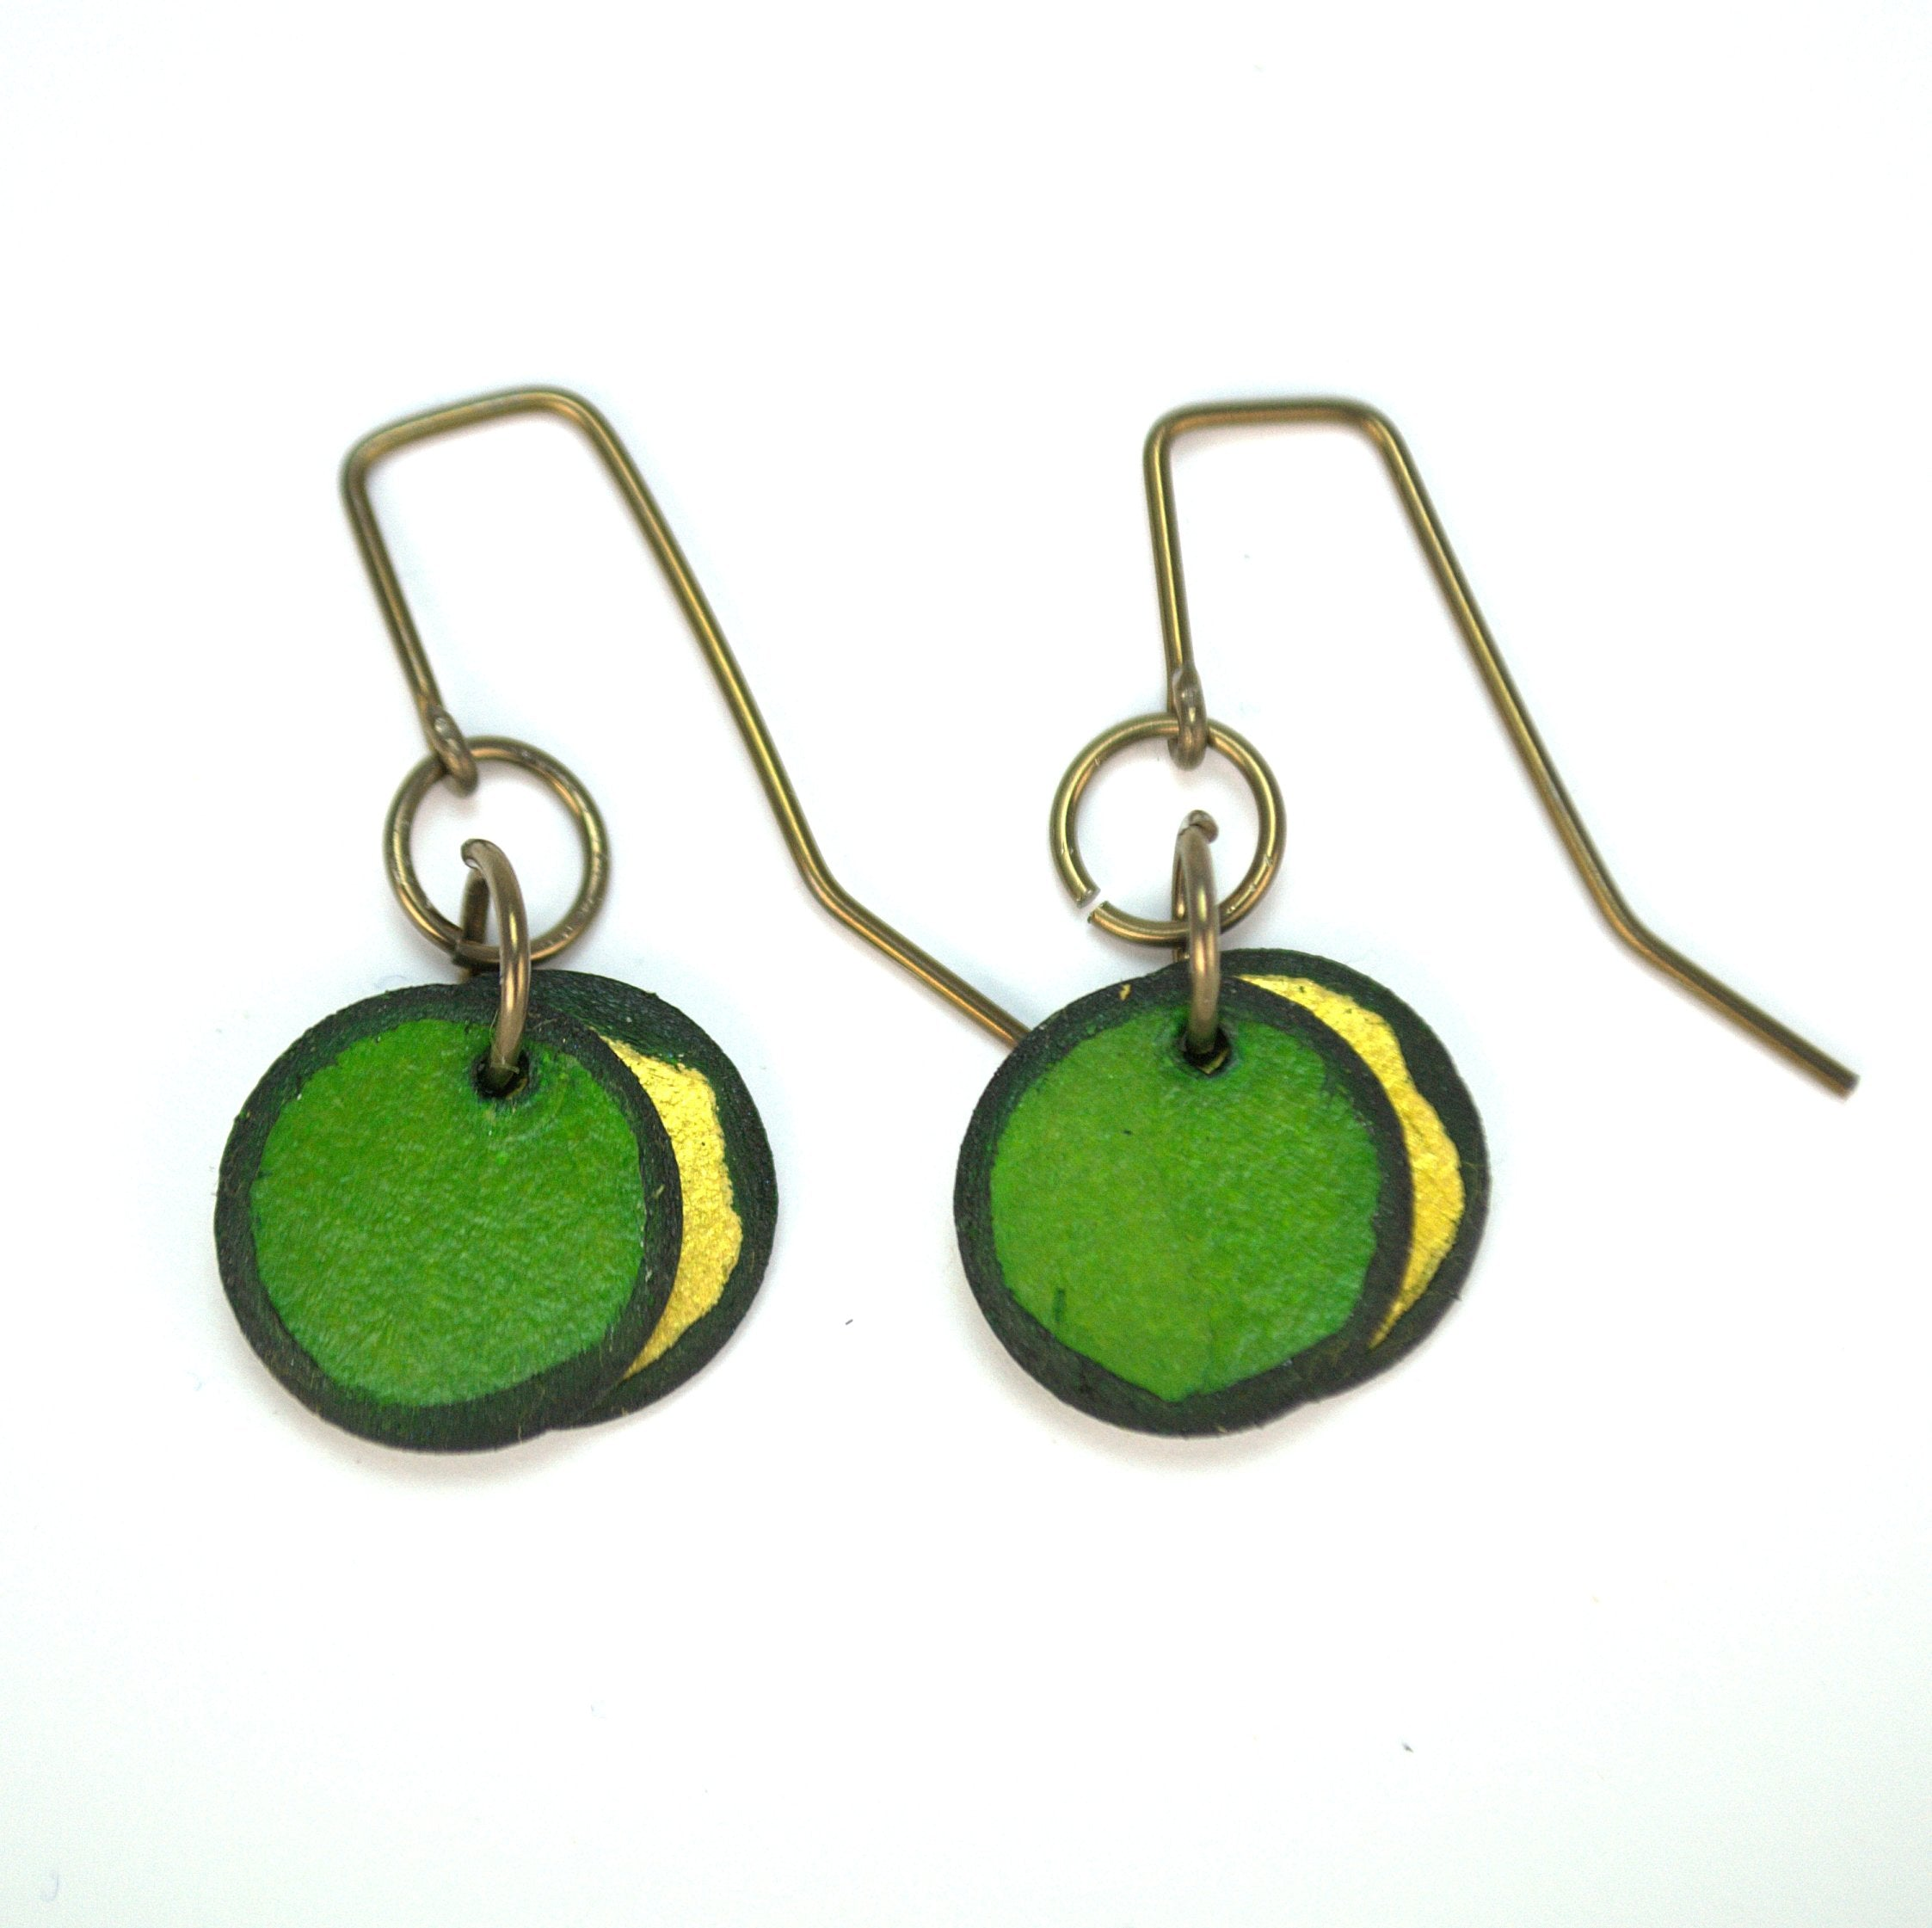 Emerald green double circle earrings made from rawhide, super lightweight